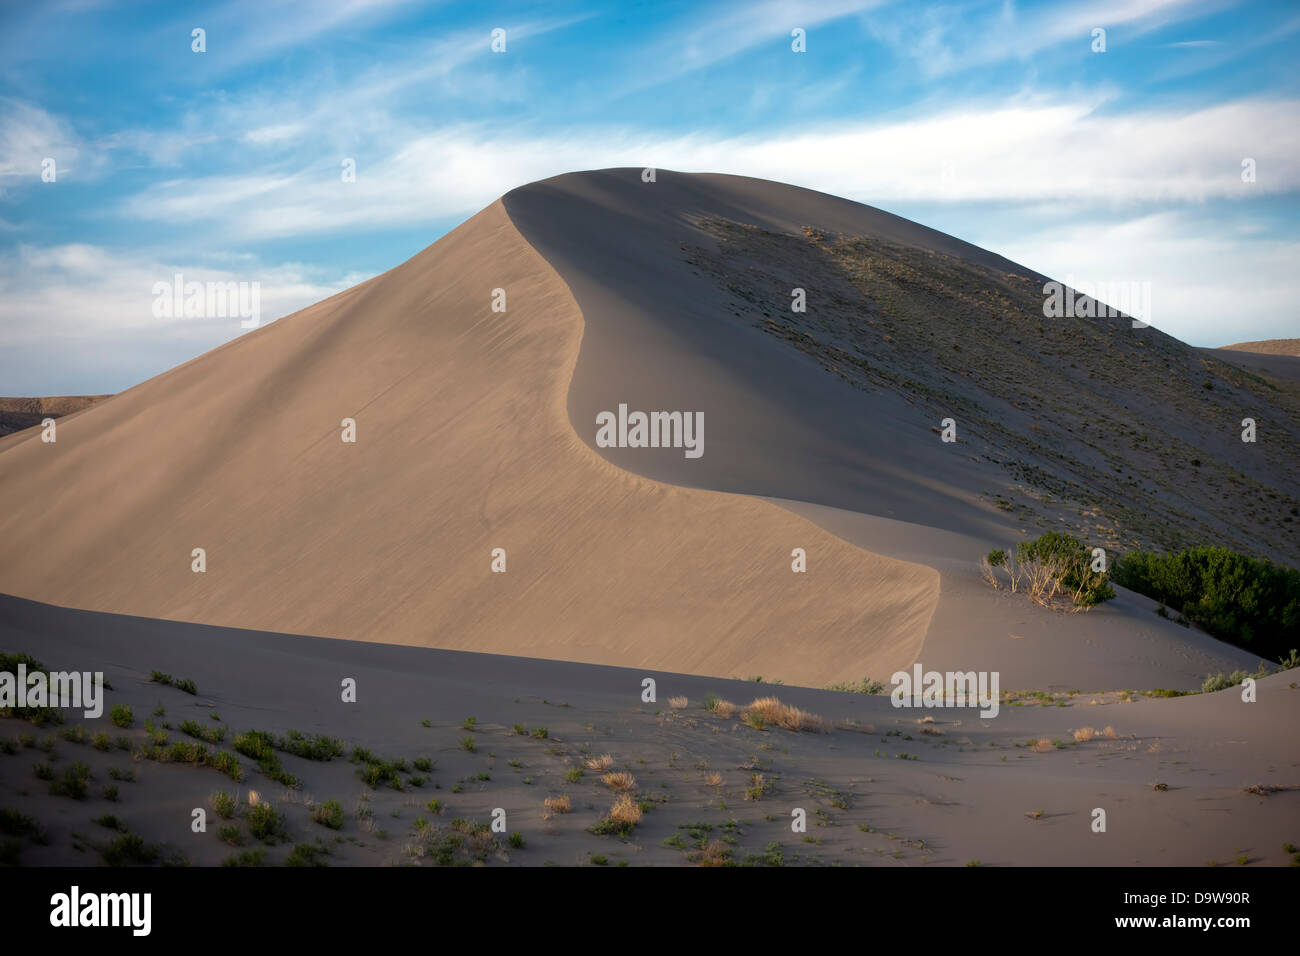 Contrasting light on the dunes. - Stock Image